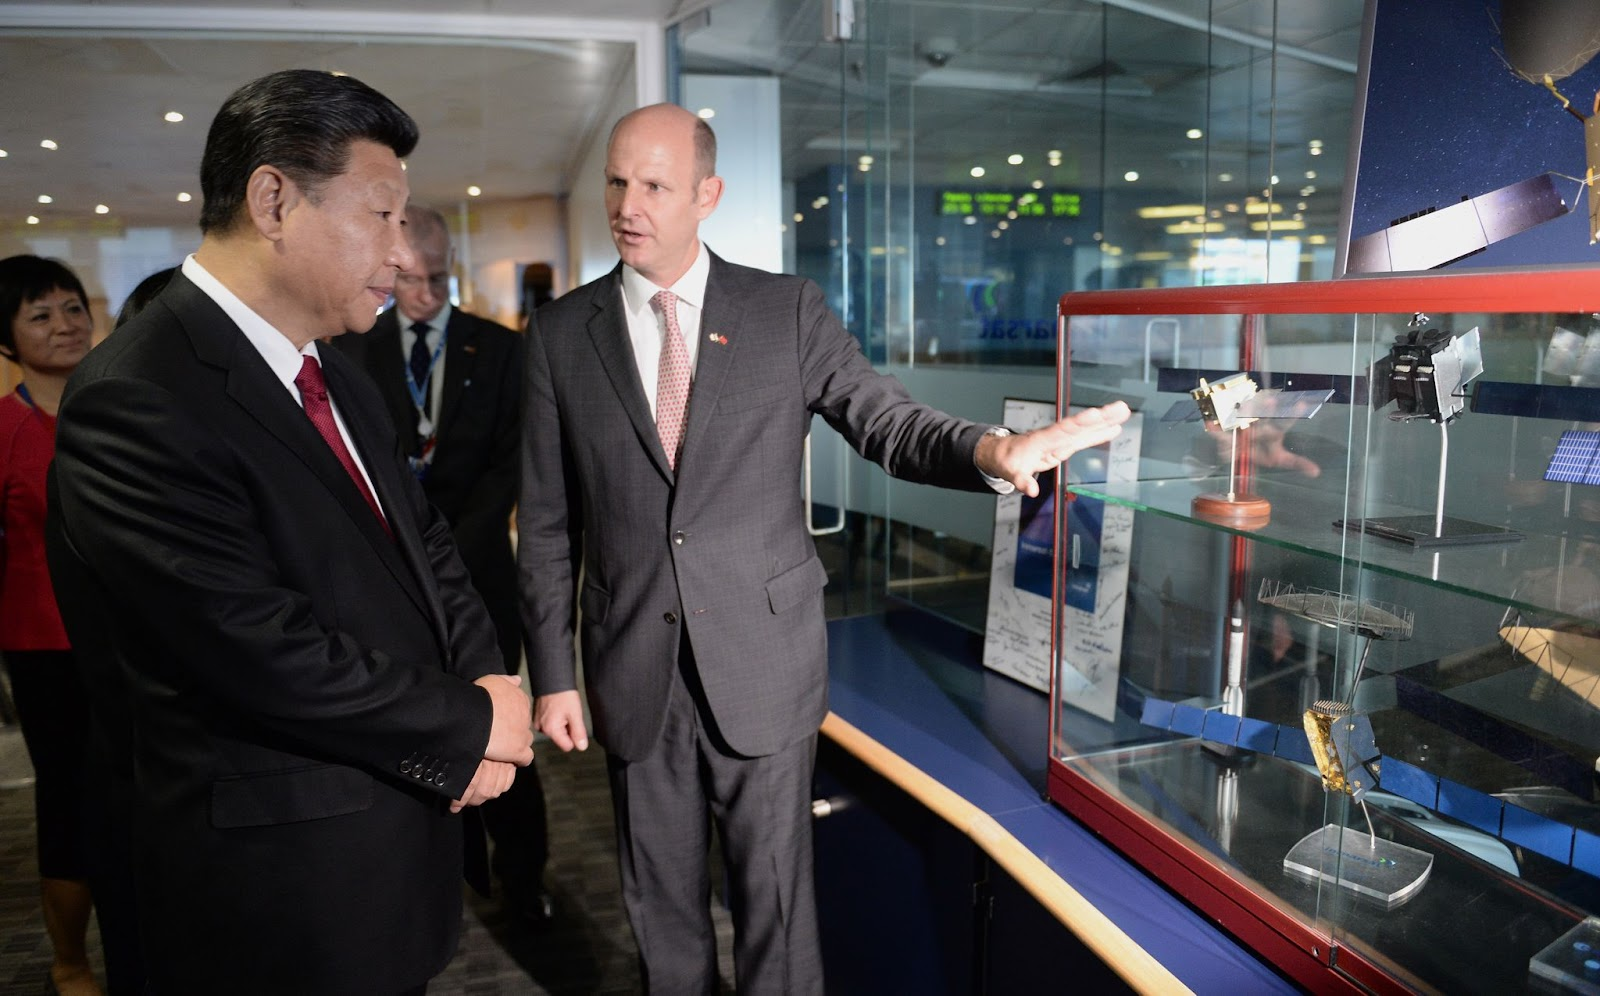 Chinese President Xi Jinping views models of satellites with Rupert Pearce, CEO of Inmarsat (R) during a visit to Inmarsat on October 22, 2015 in London, England. Recent investigations by the UK press reveal a startling buyup of Britain's technology, education, energy, and business by Chinese Communist Party-owned and linked entities.